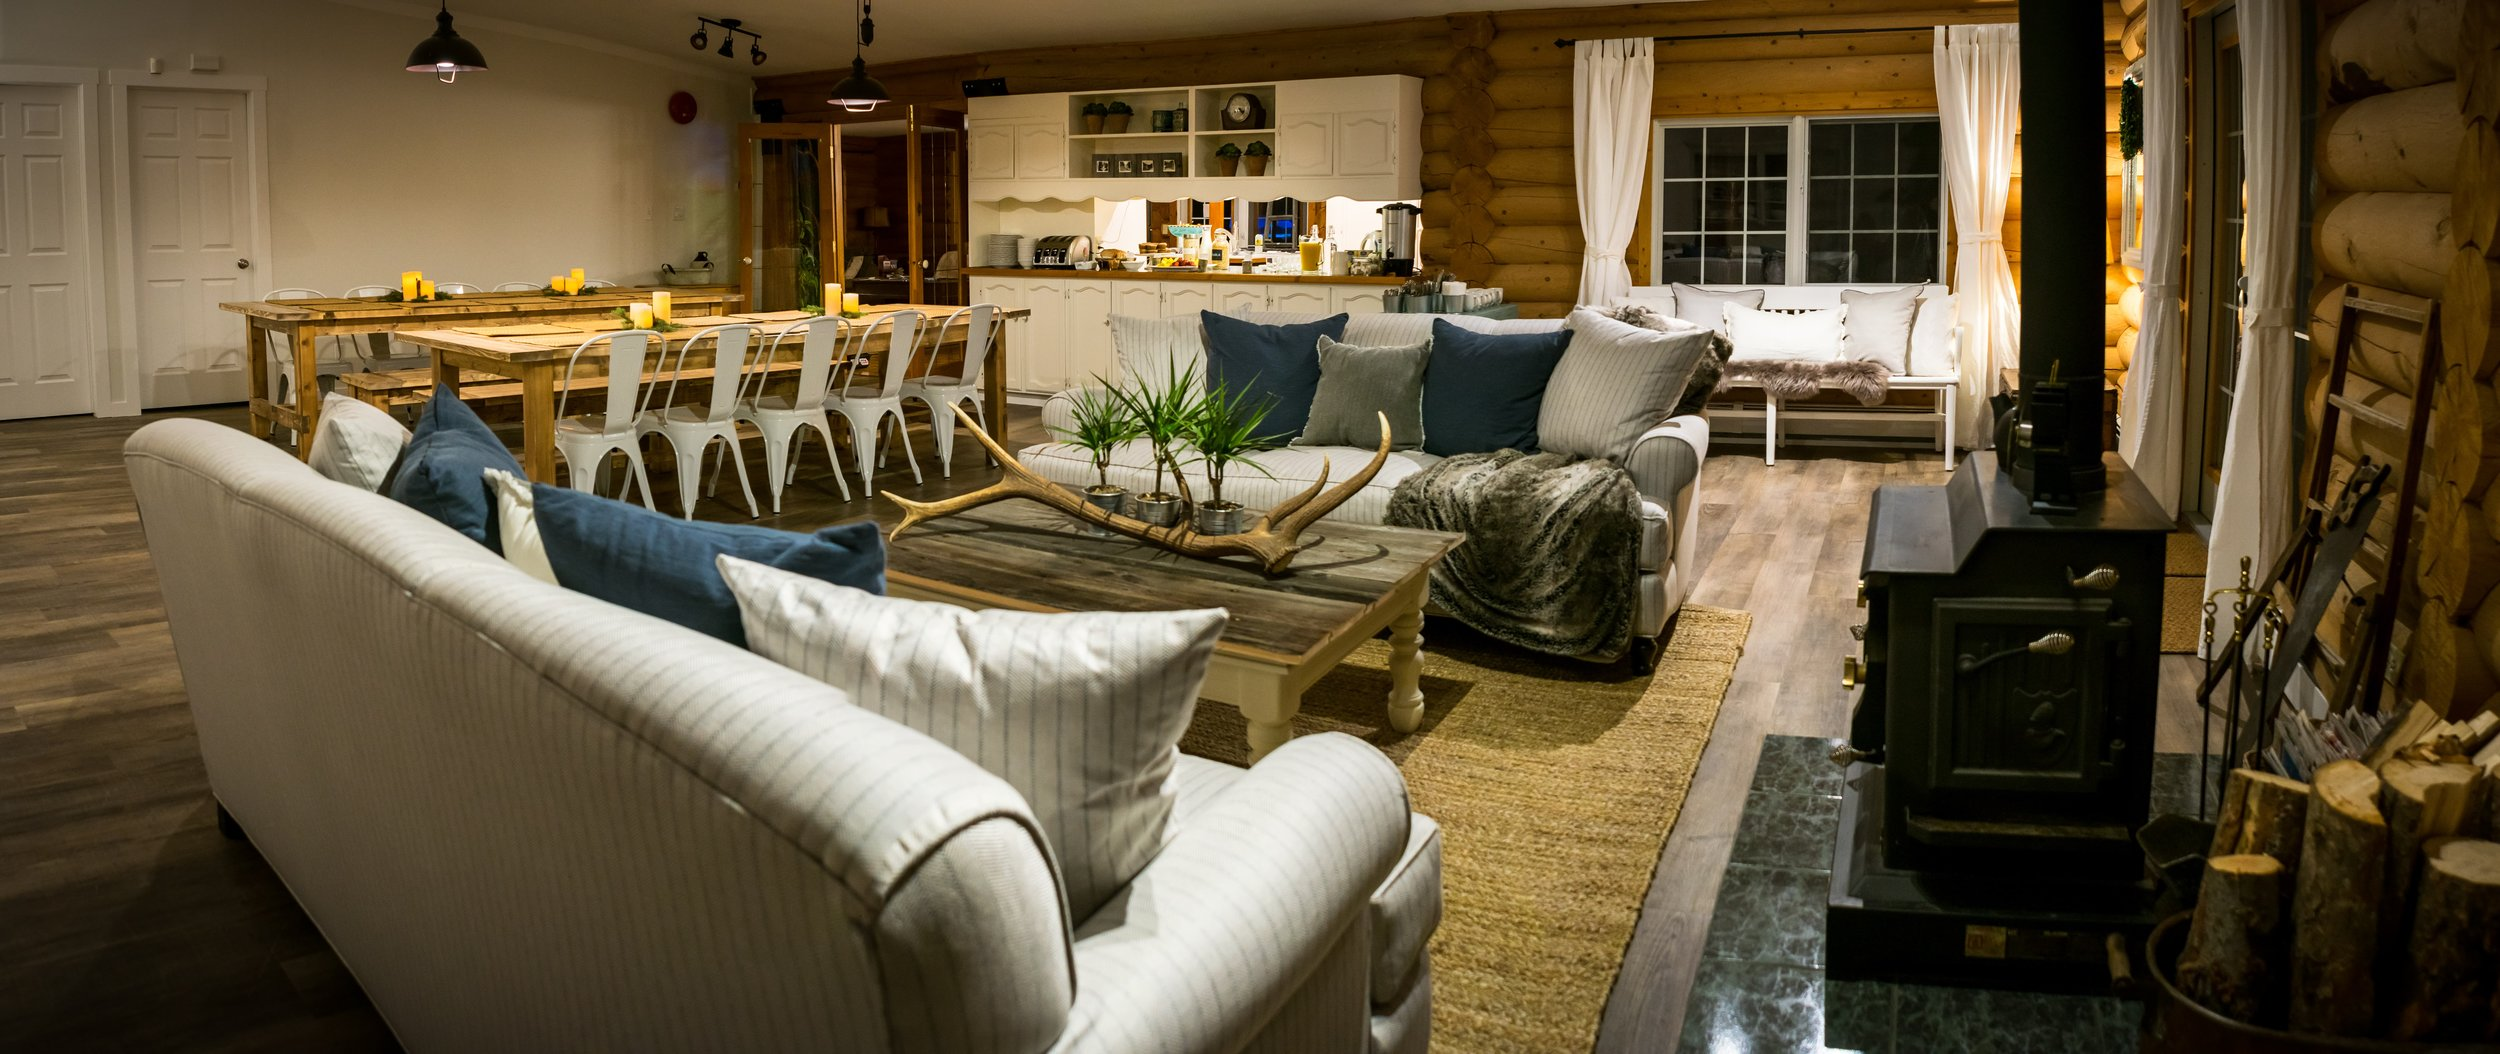 The dining room and living room at Whitewater Lodge